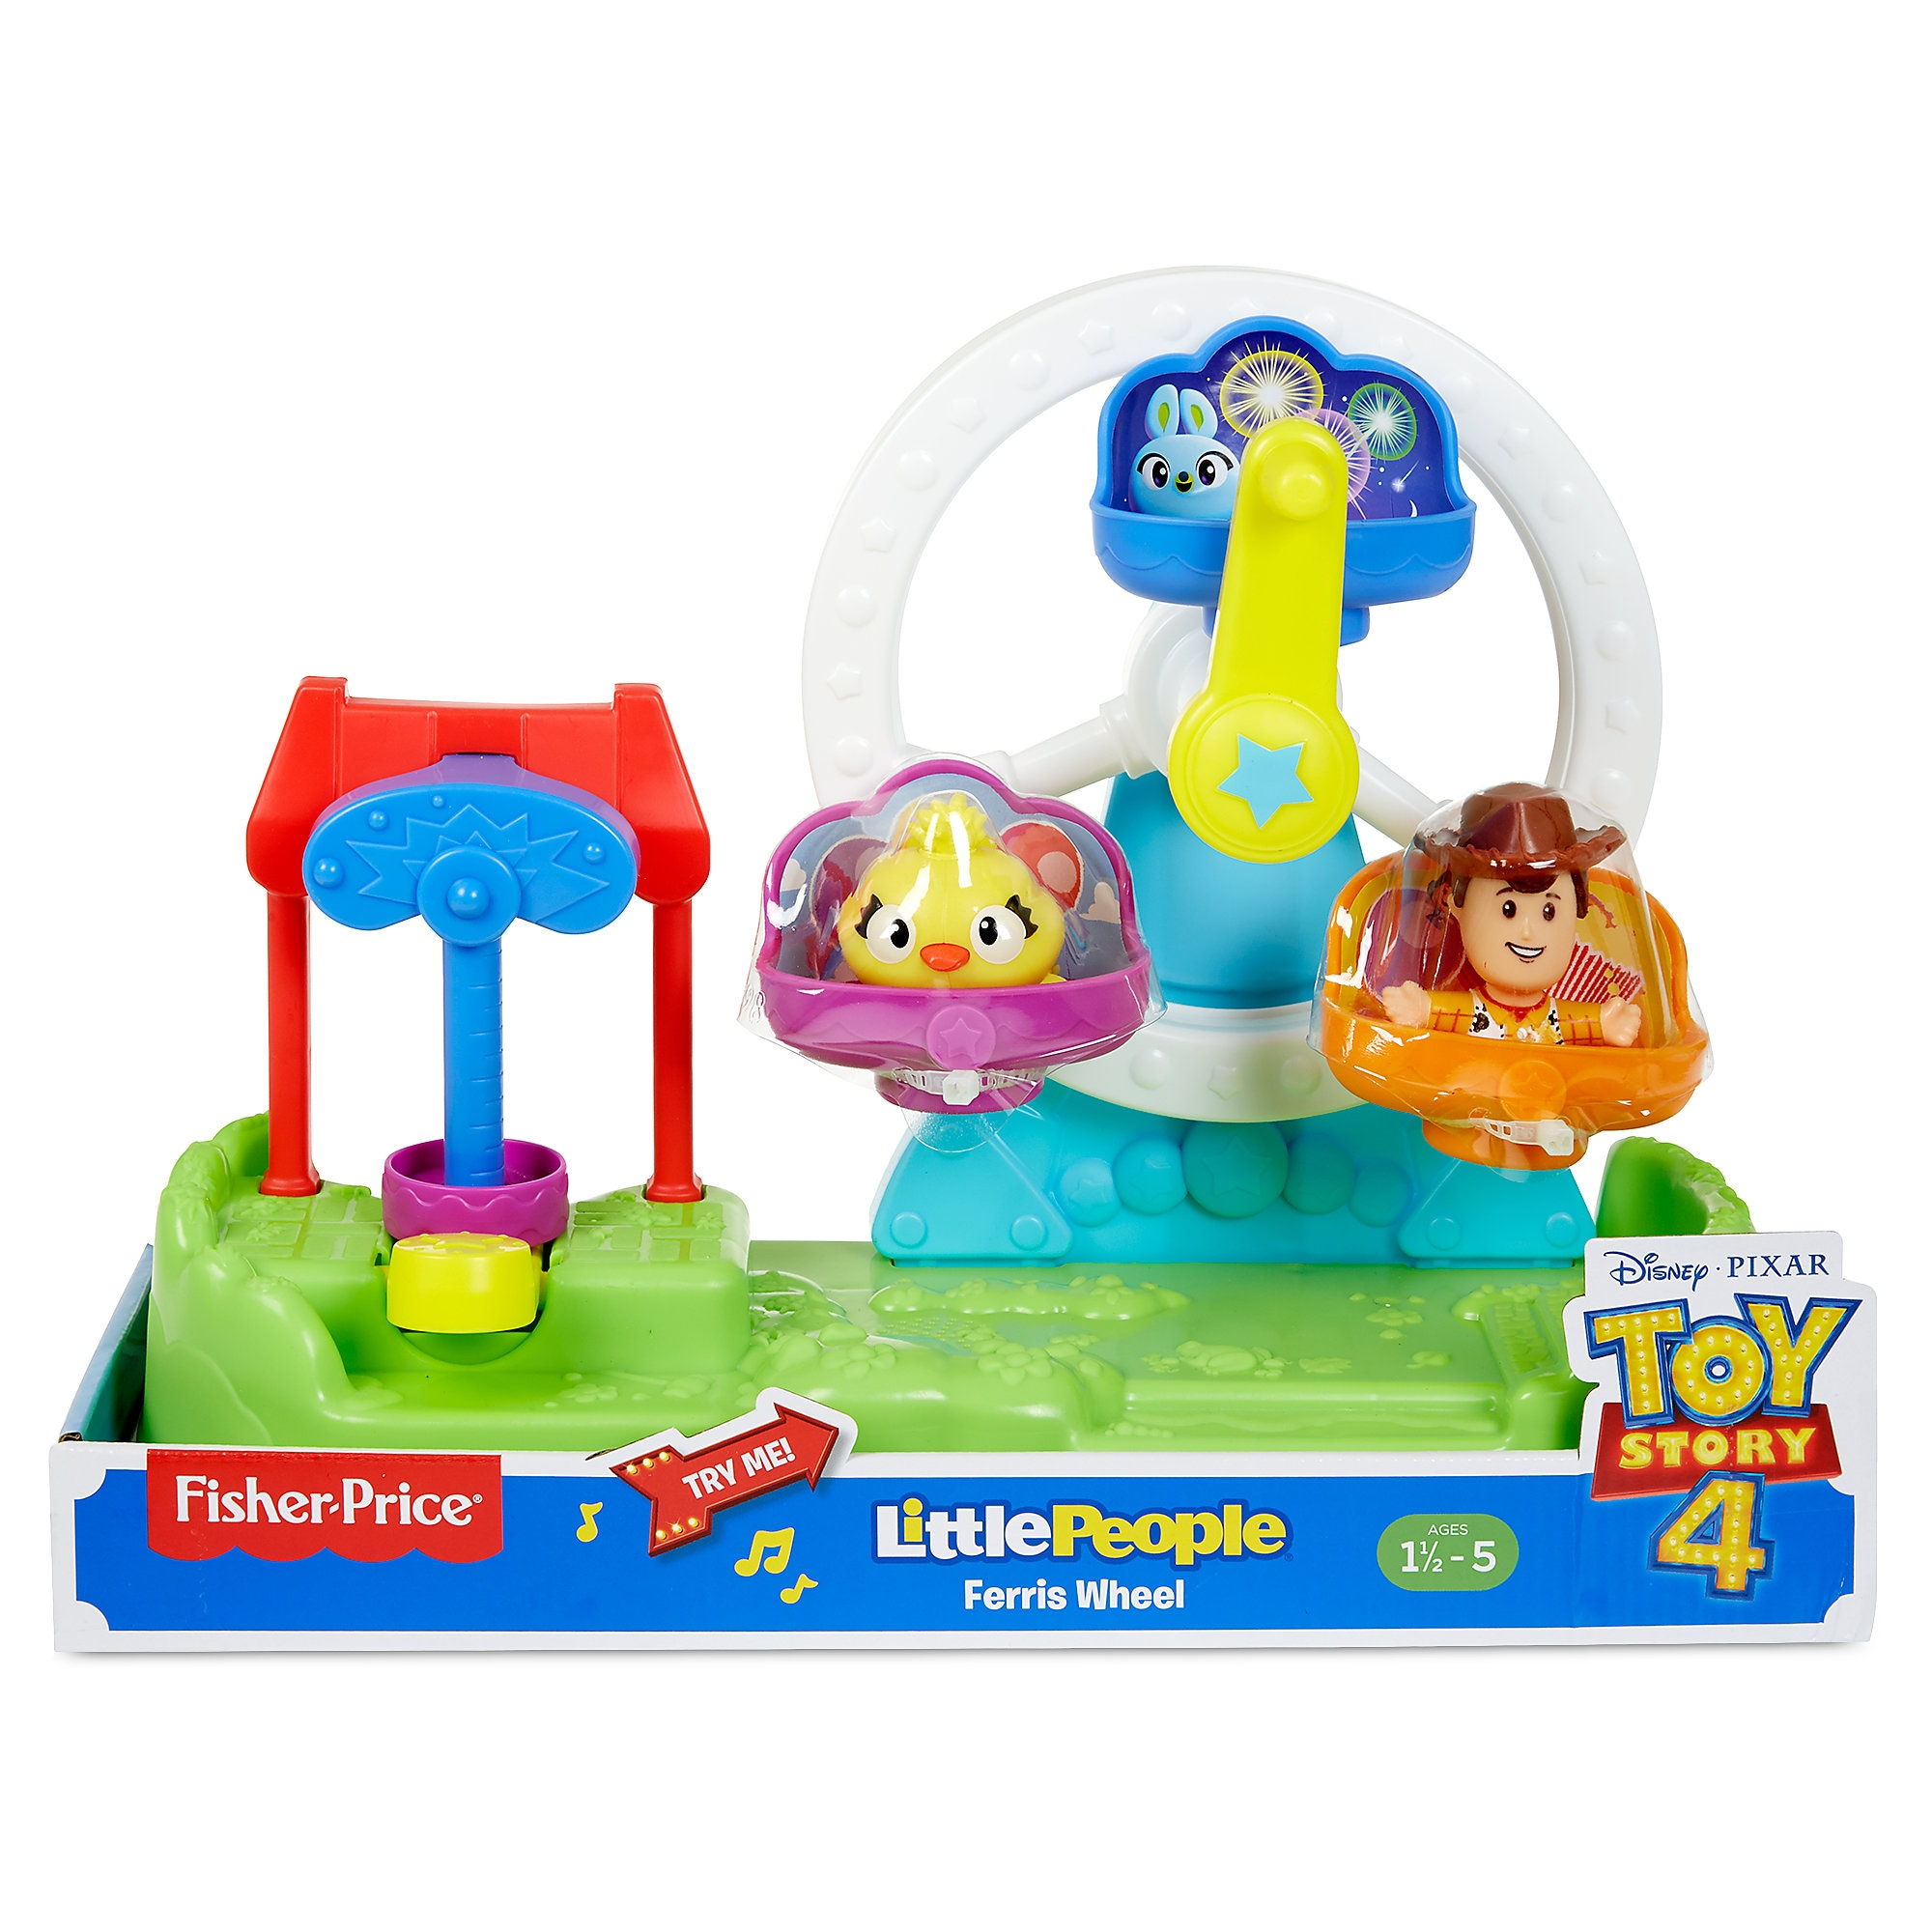 Toy Story 4 Ferris Wheel Play Set by Little People has hit the shelves for purchase